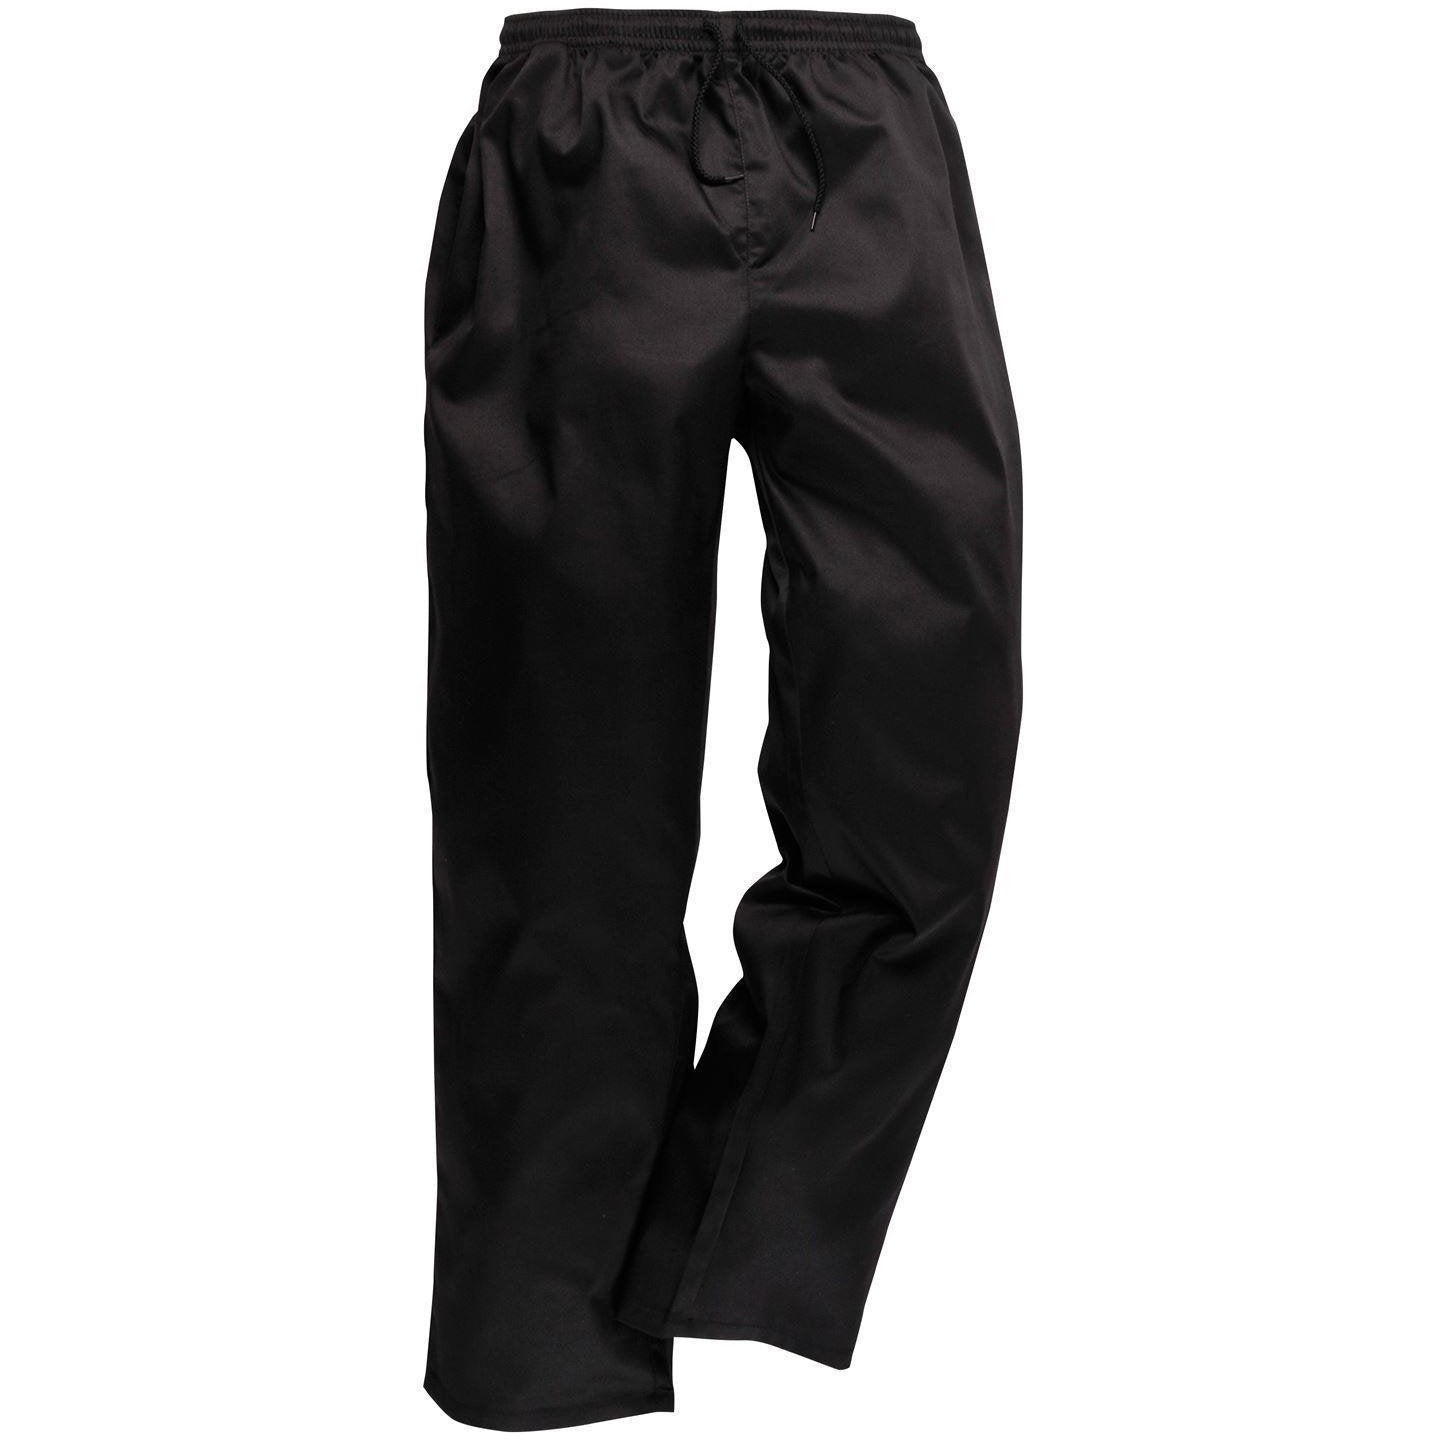 Portwest Drawstring Trousers C070 - reid outdoors